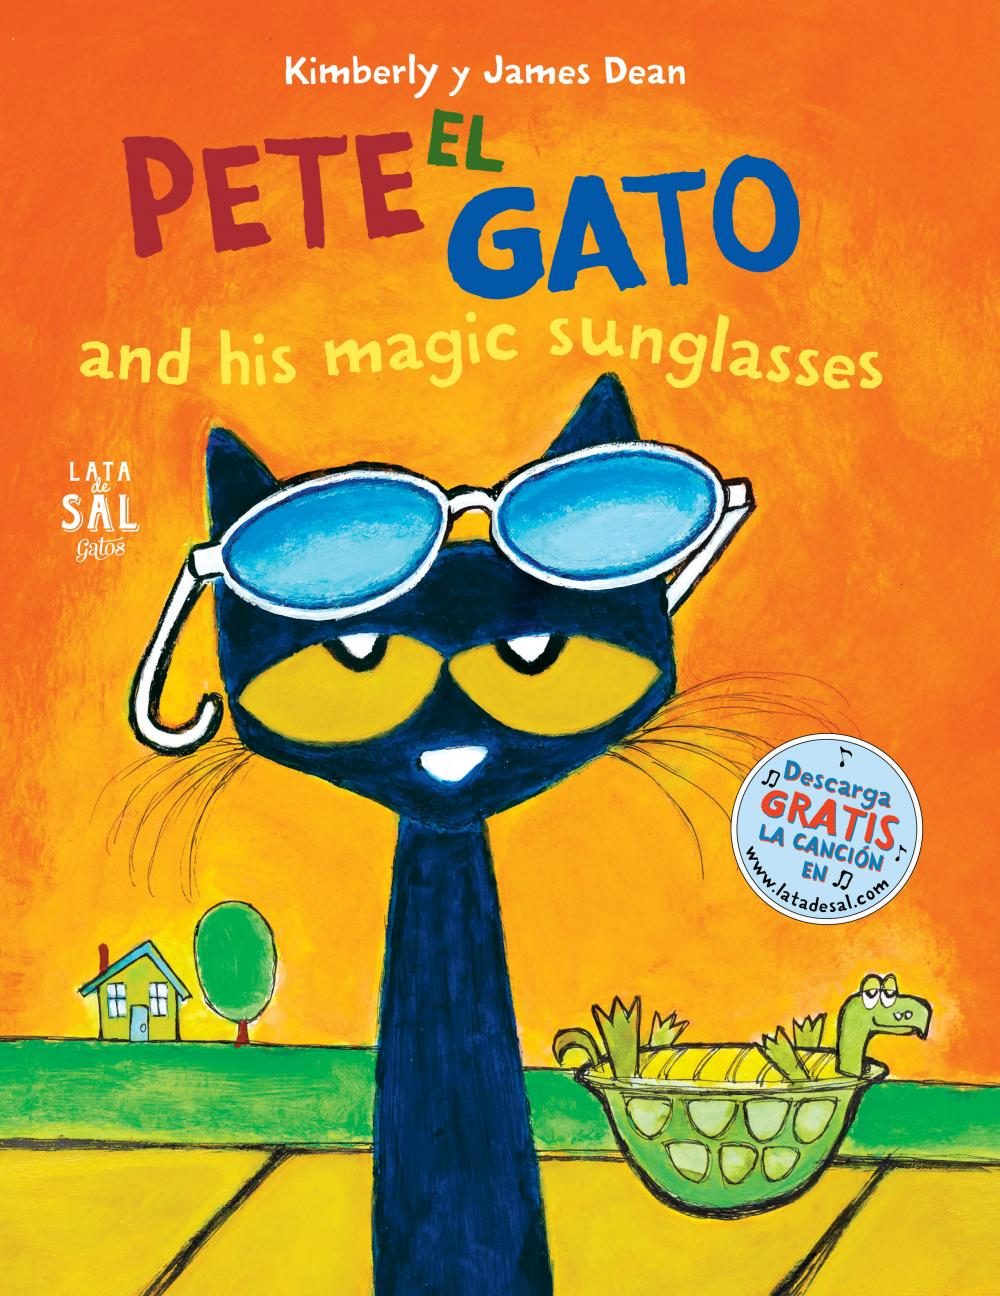 Pete el gato and his magic sunglasses